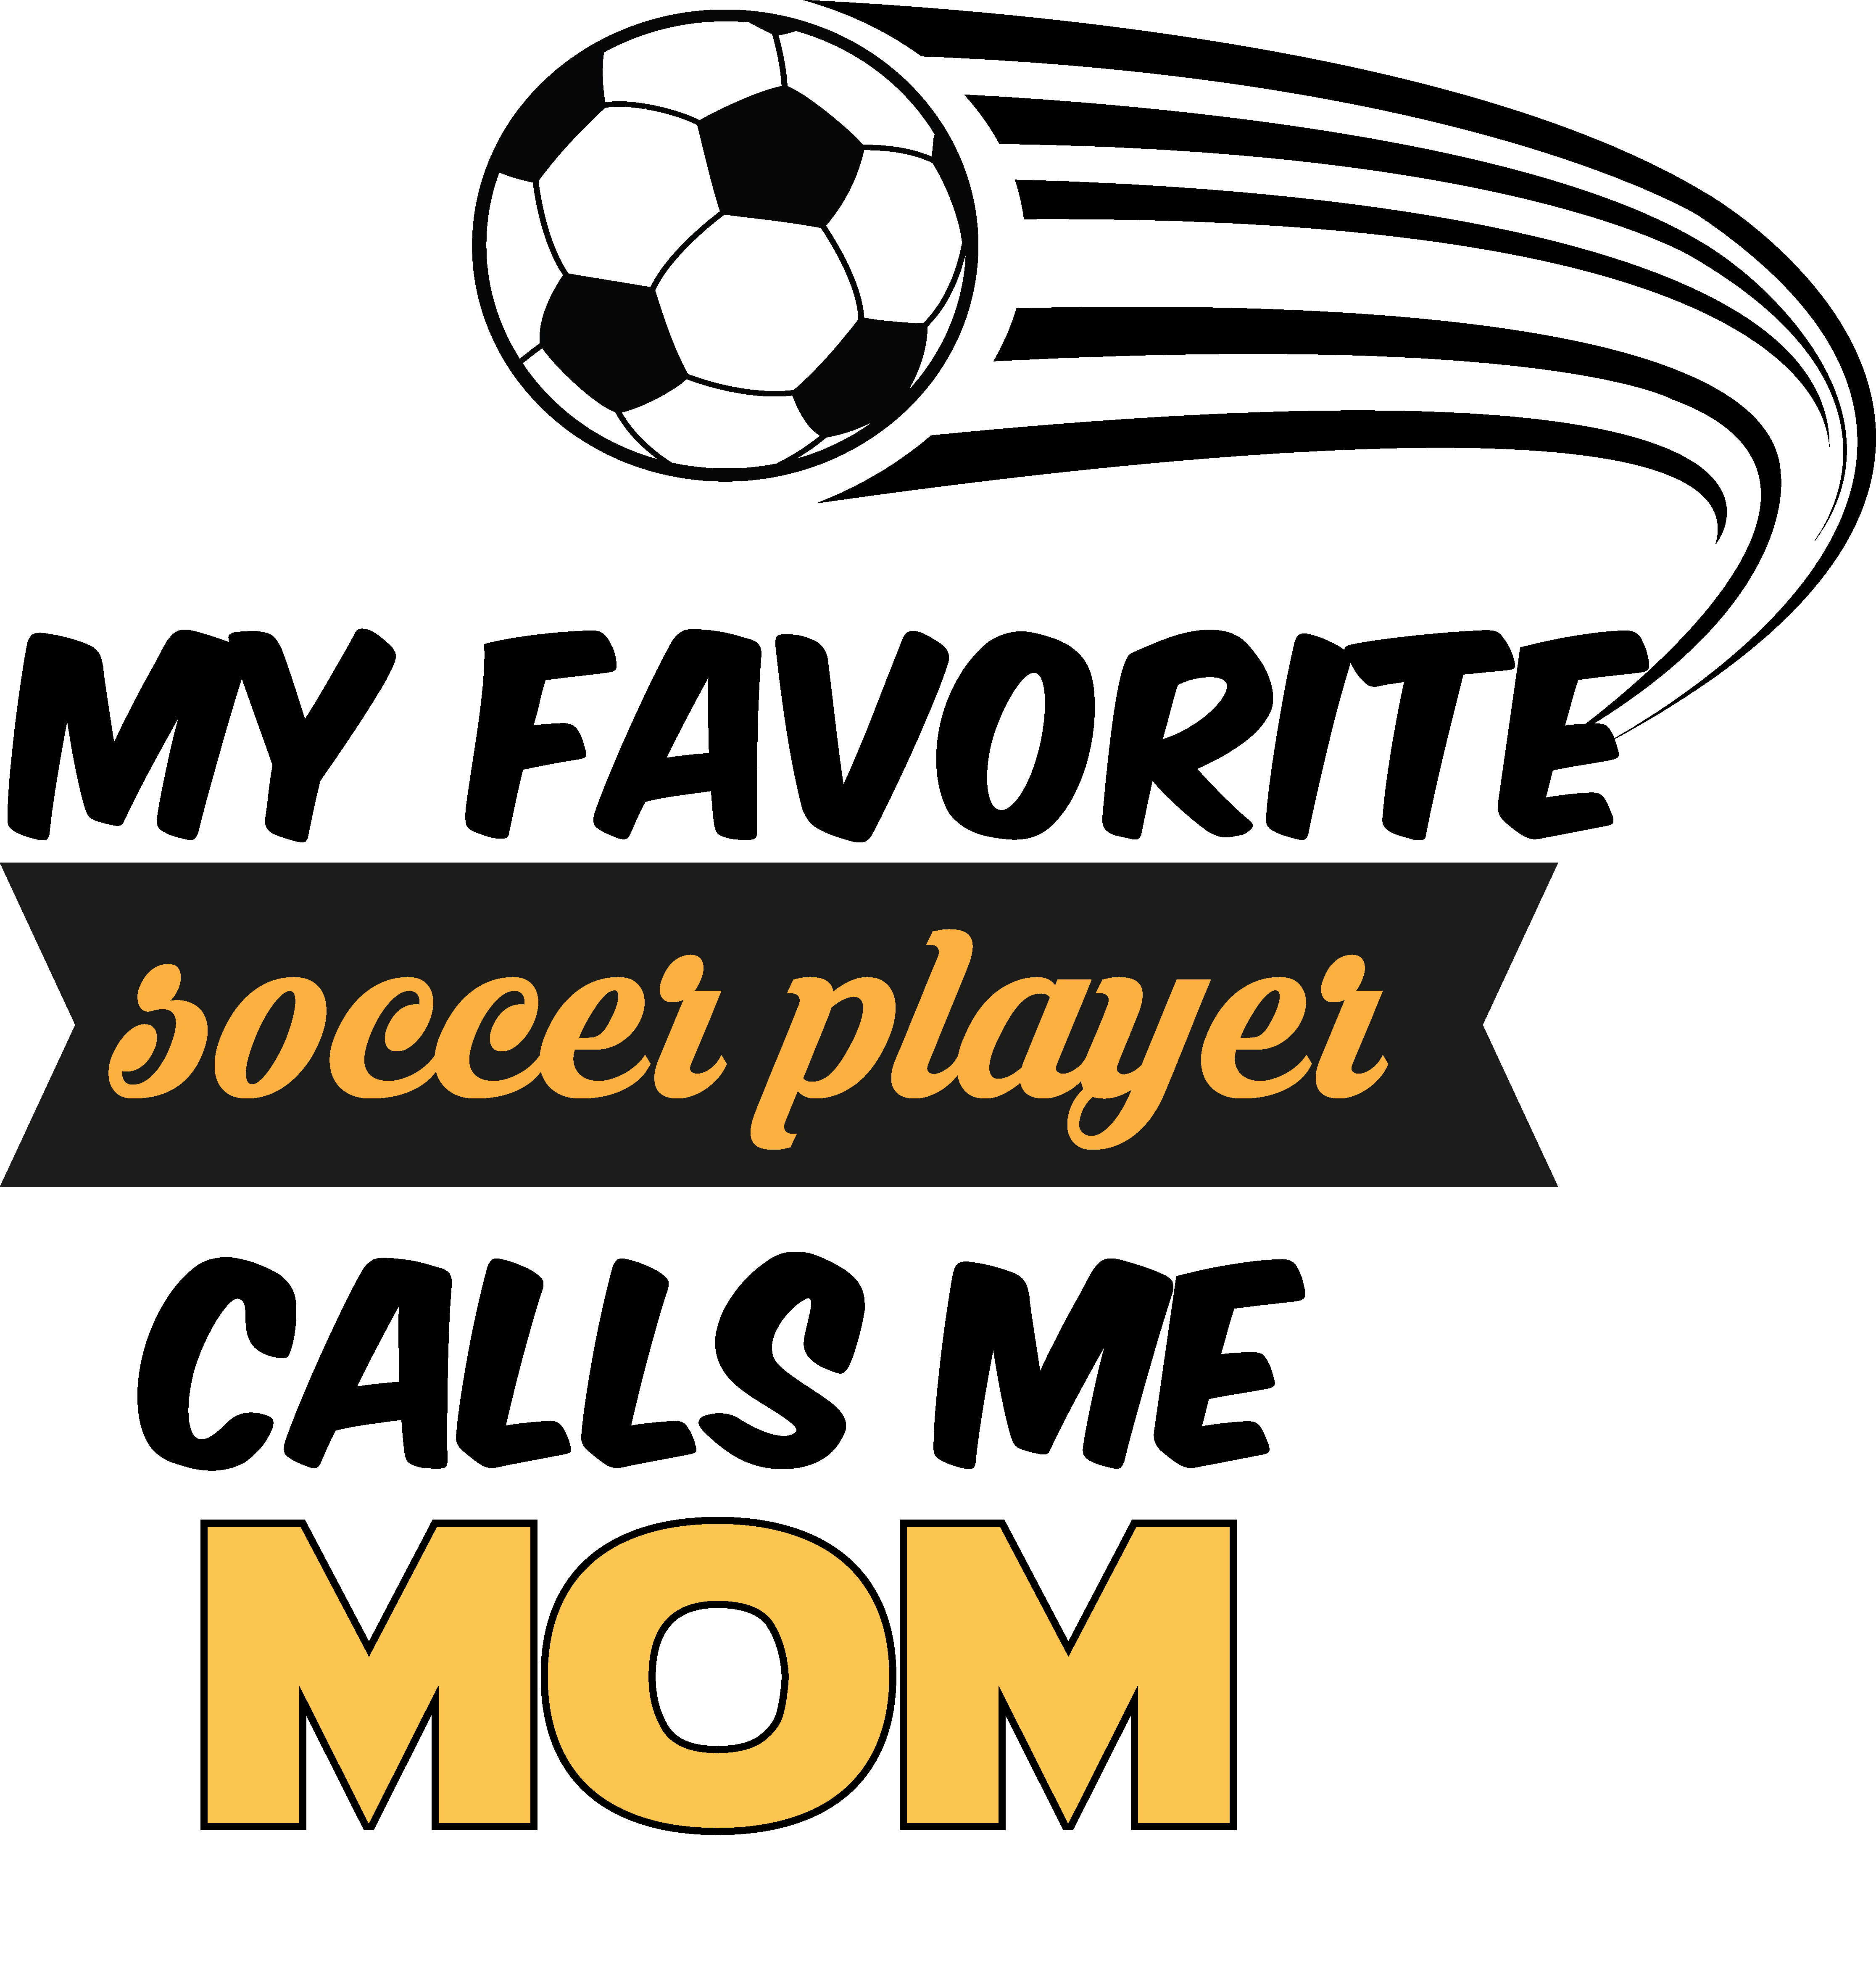 Does Yours Soccer Mom Quotes Call My Mom Soccer Quotes